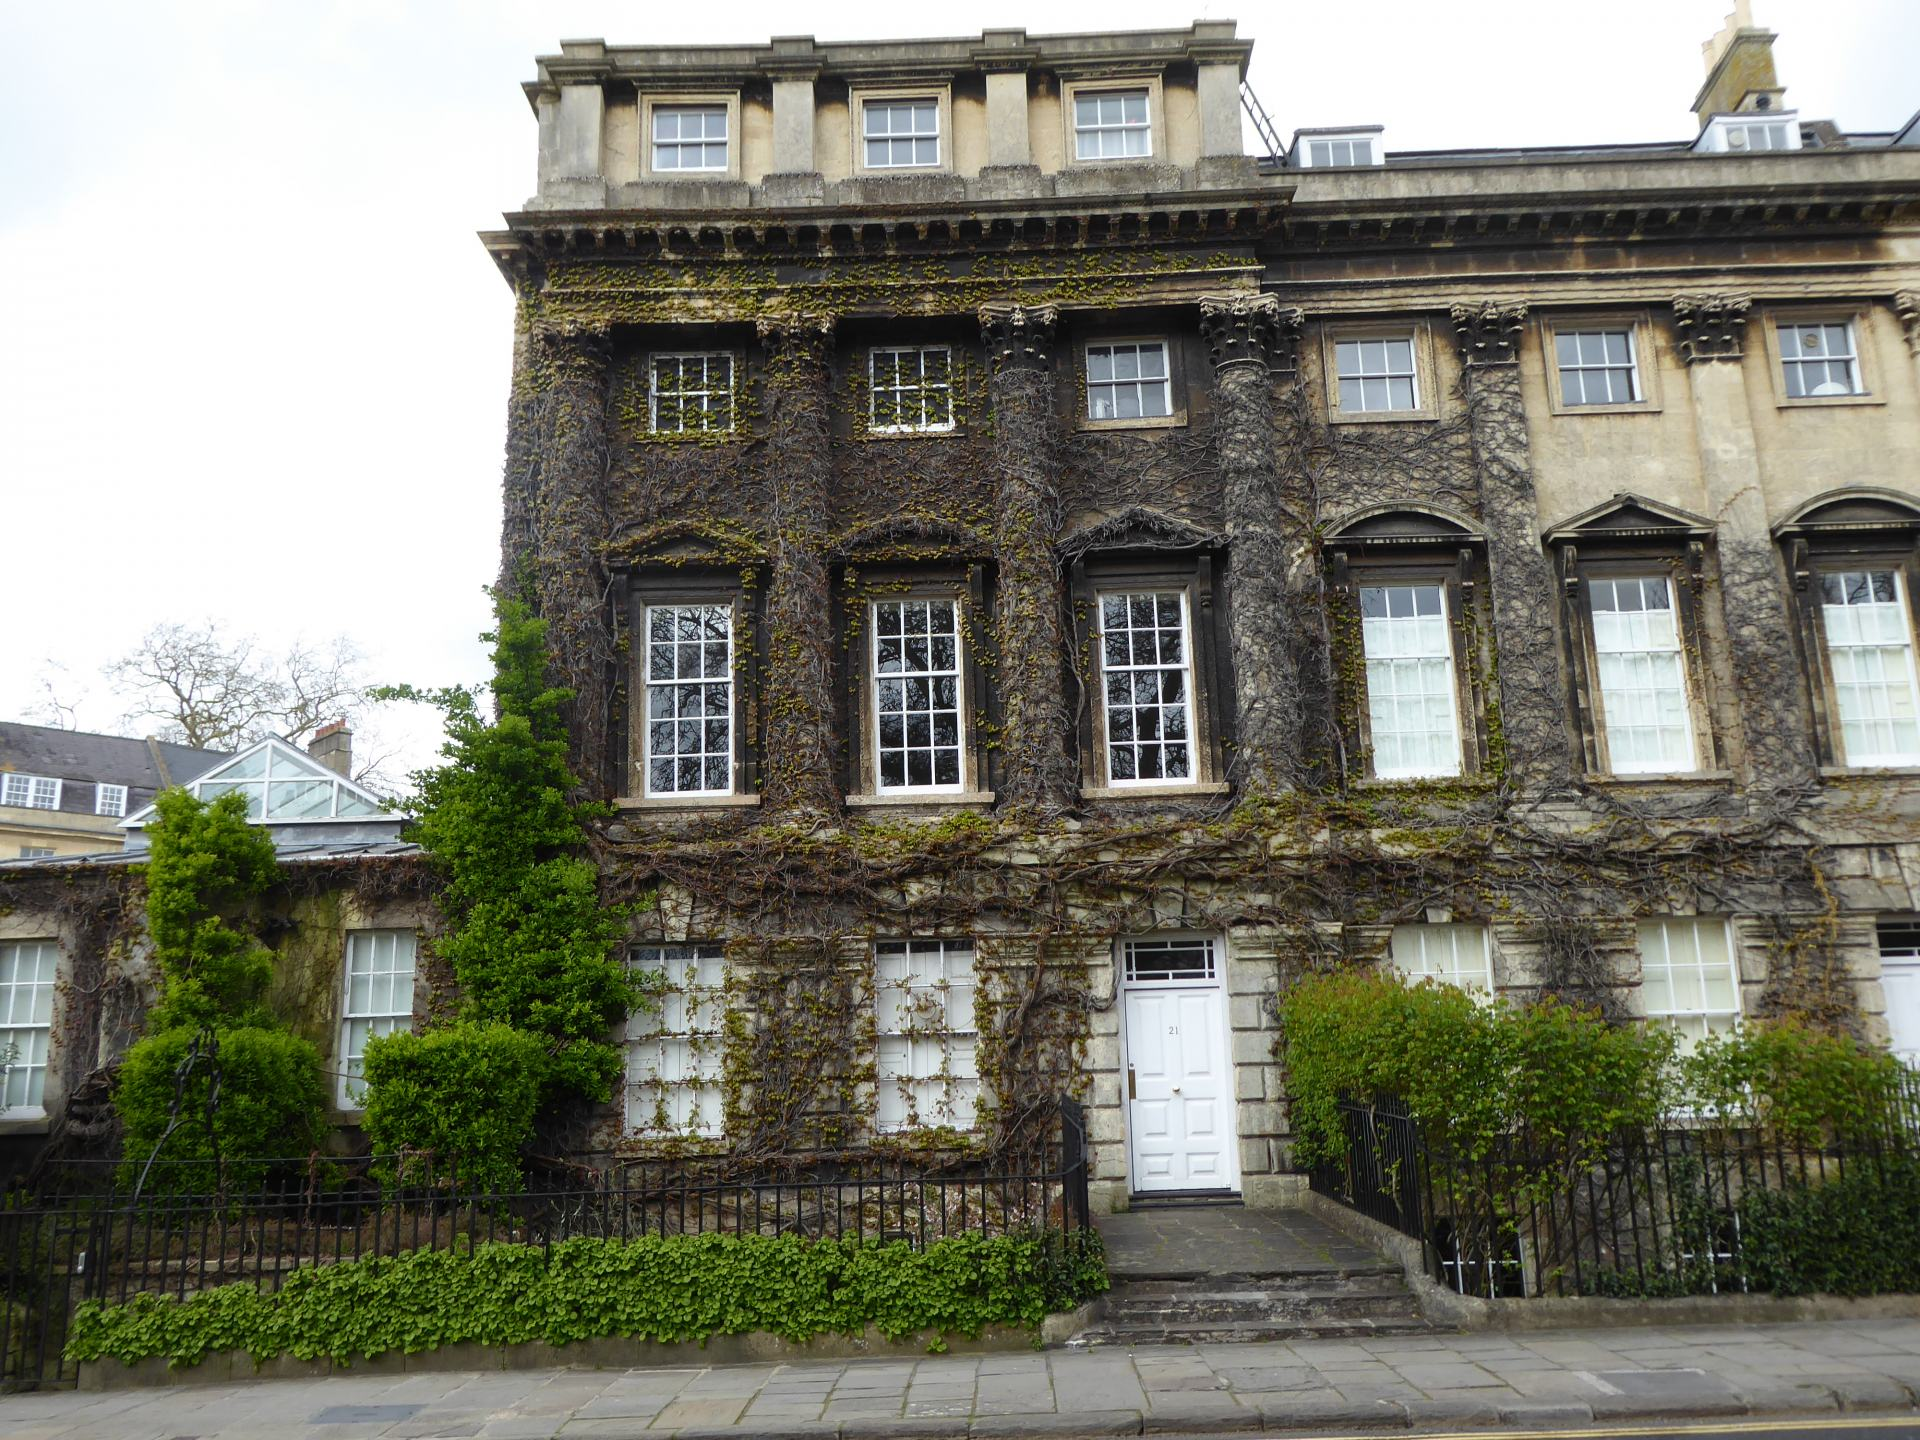 A building on the corner of Queens Square in Bath, with tree/plant roots growing over much of the stone.